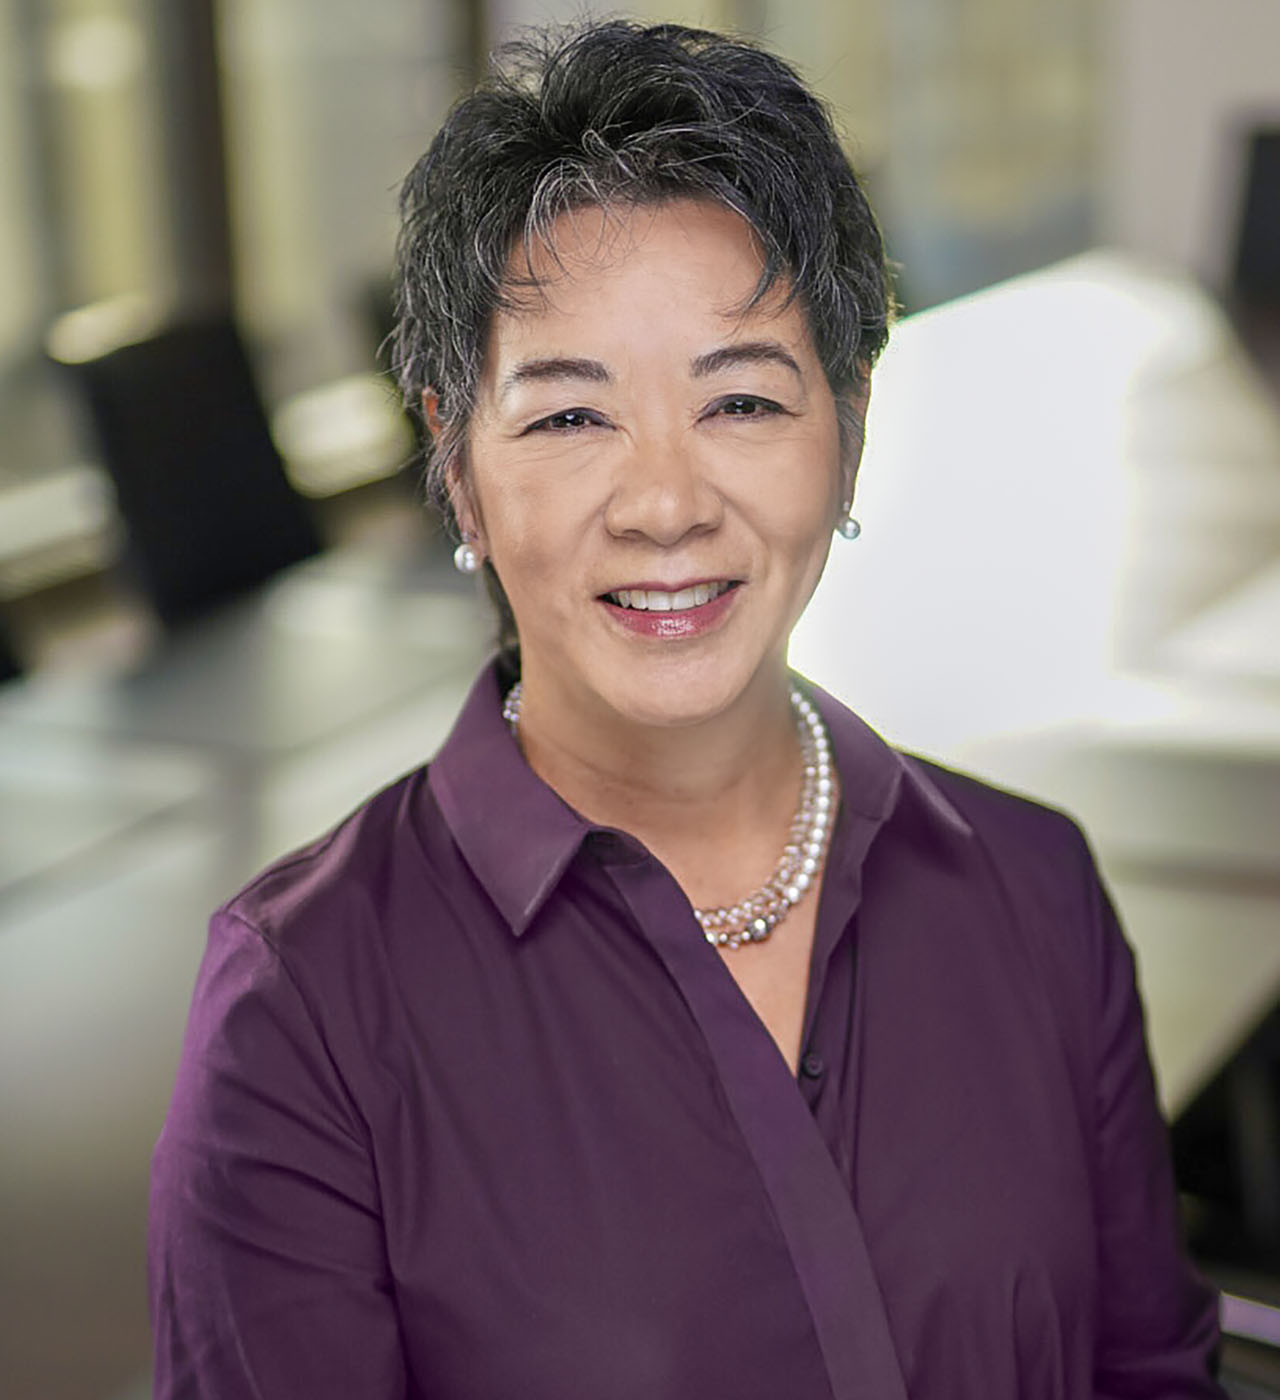 Diana K. Lee is a Partner at Kanuka